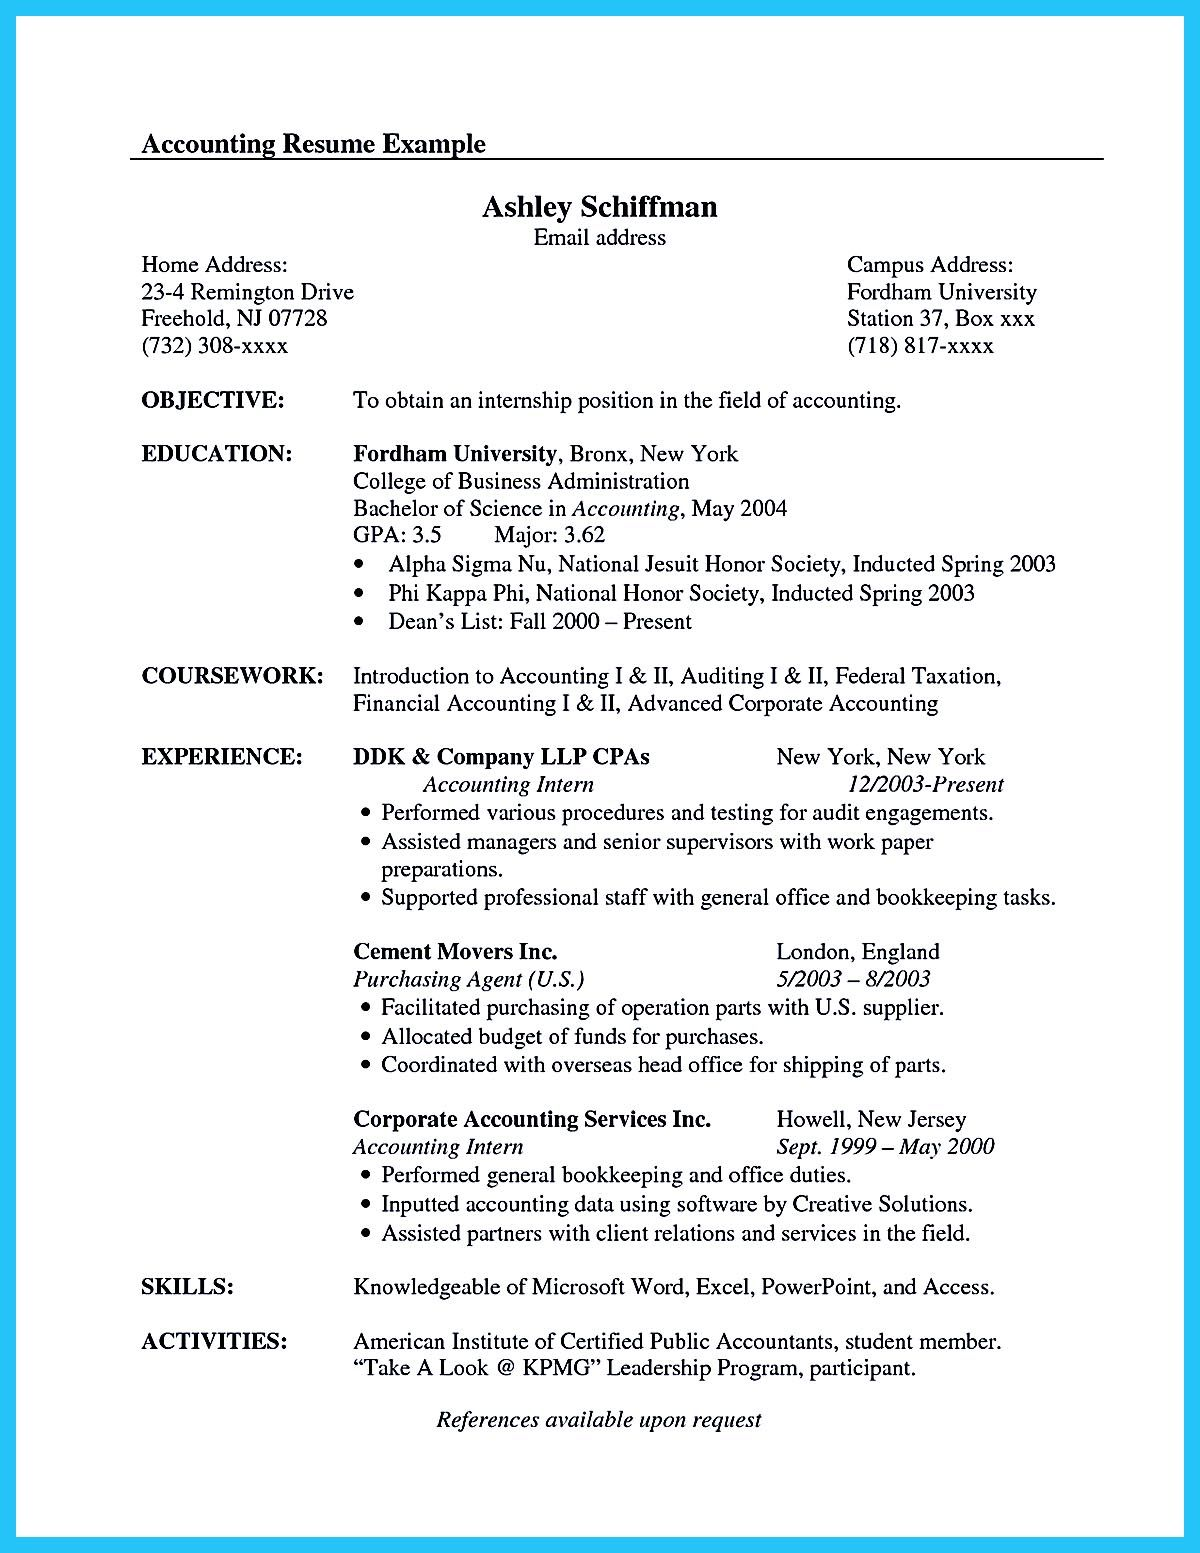 accounting student resume here presents how the resume of accounting student clearly made the accounting - Accounting Student Resume